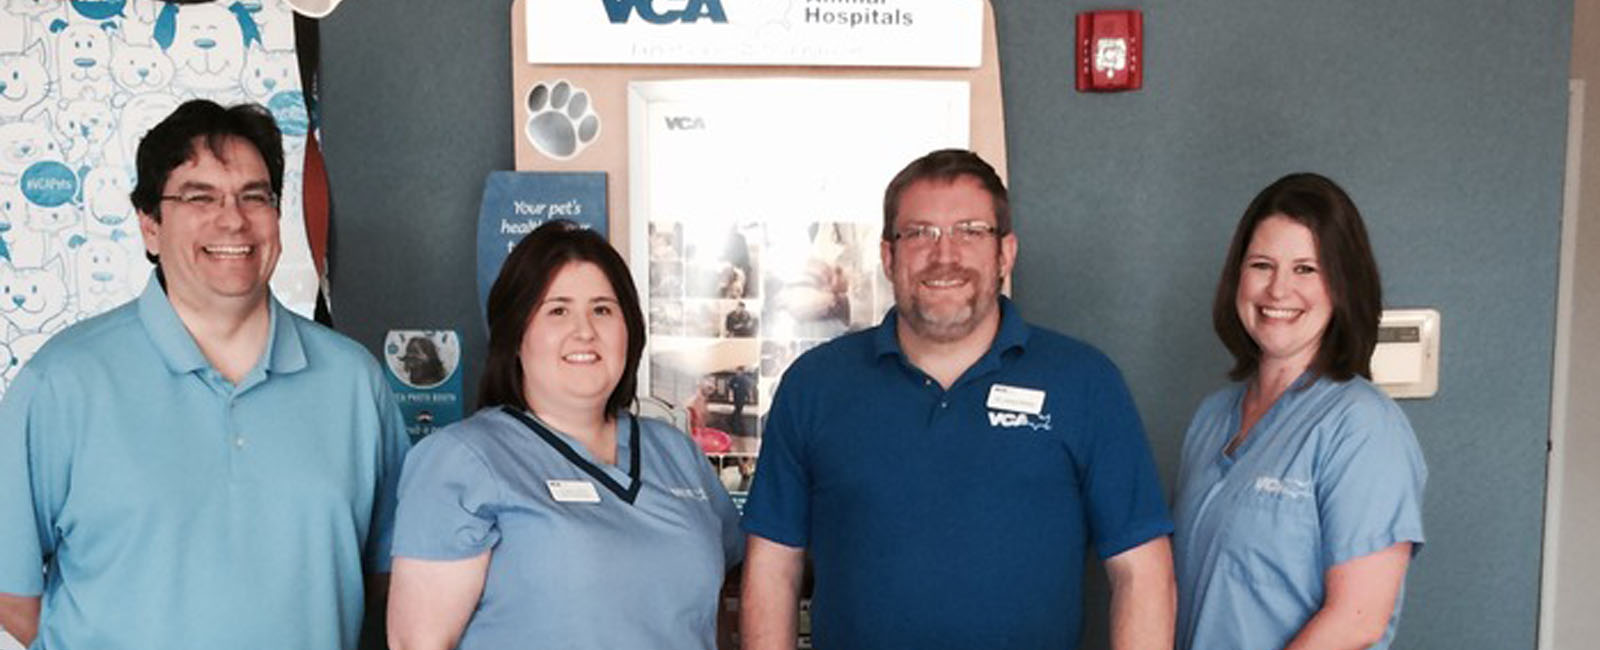 Homepage Team Picture of VCA Bedford Meadows Animal Hospital